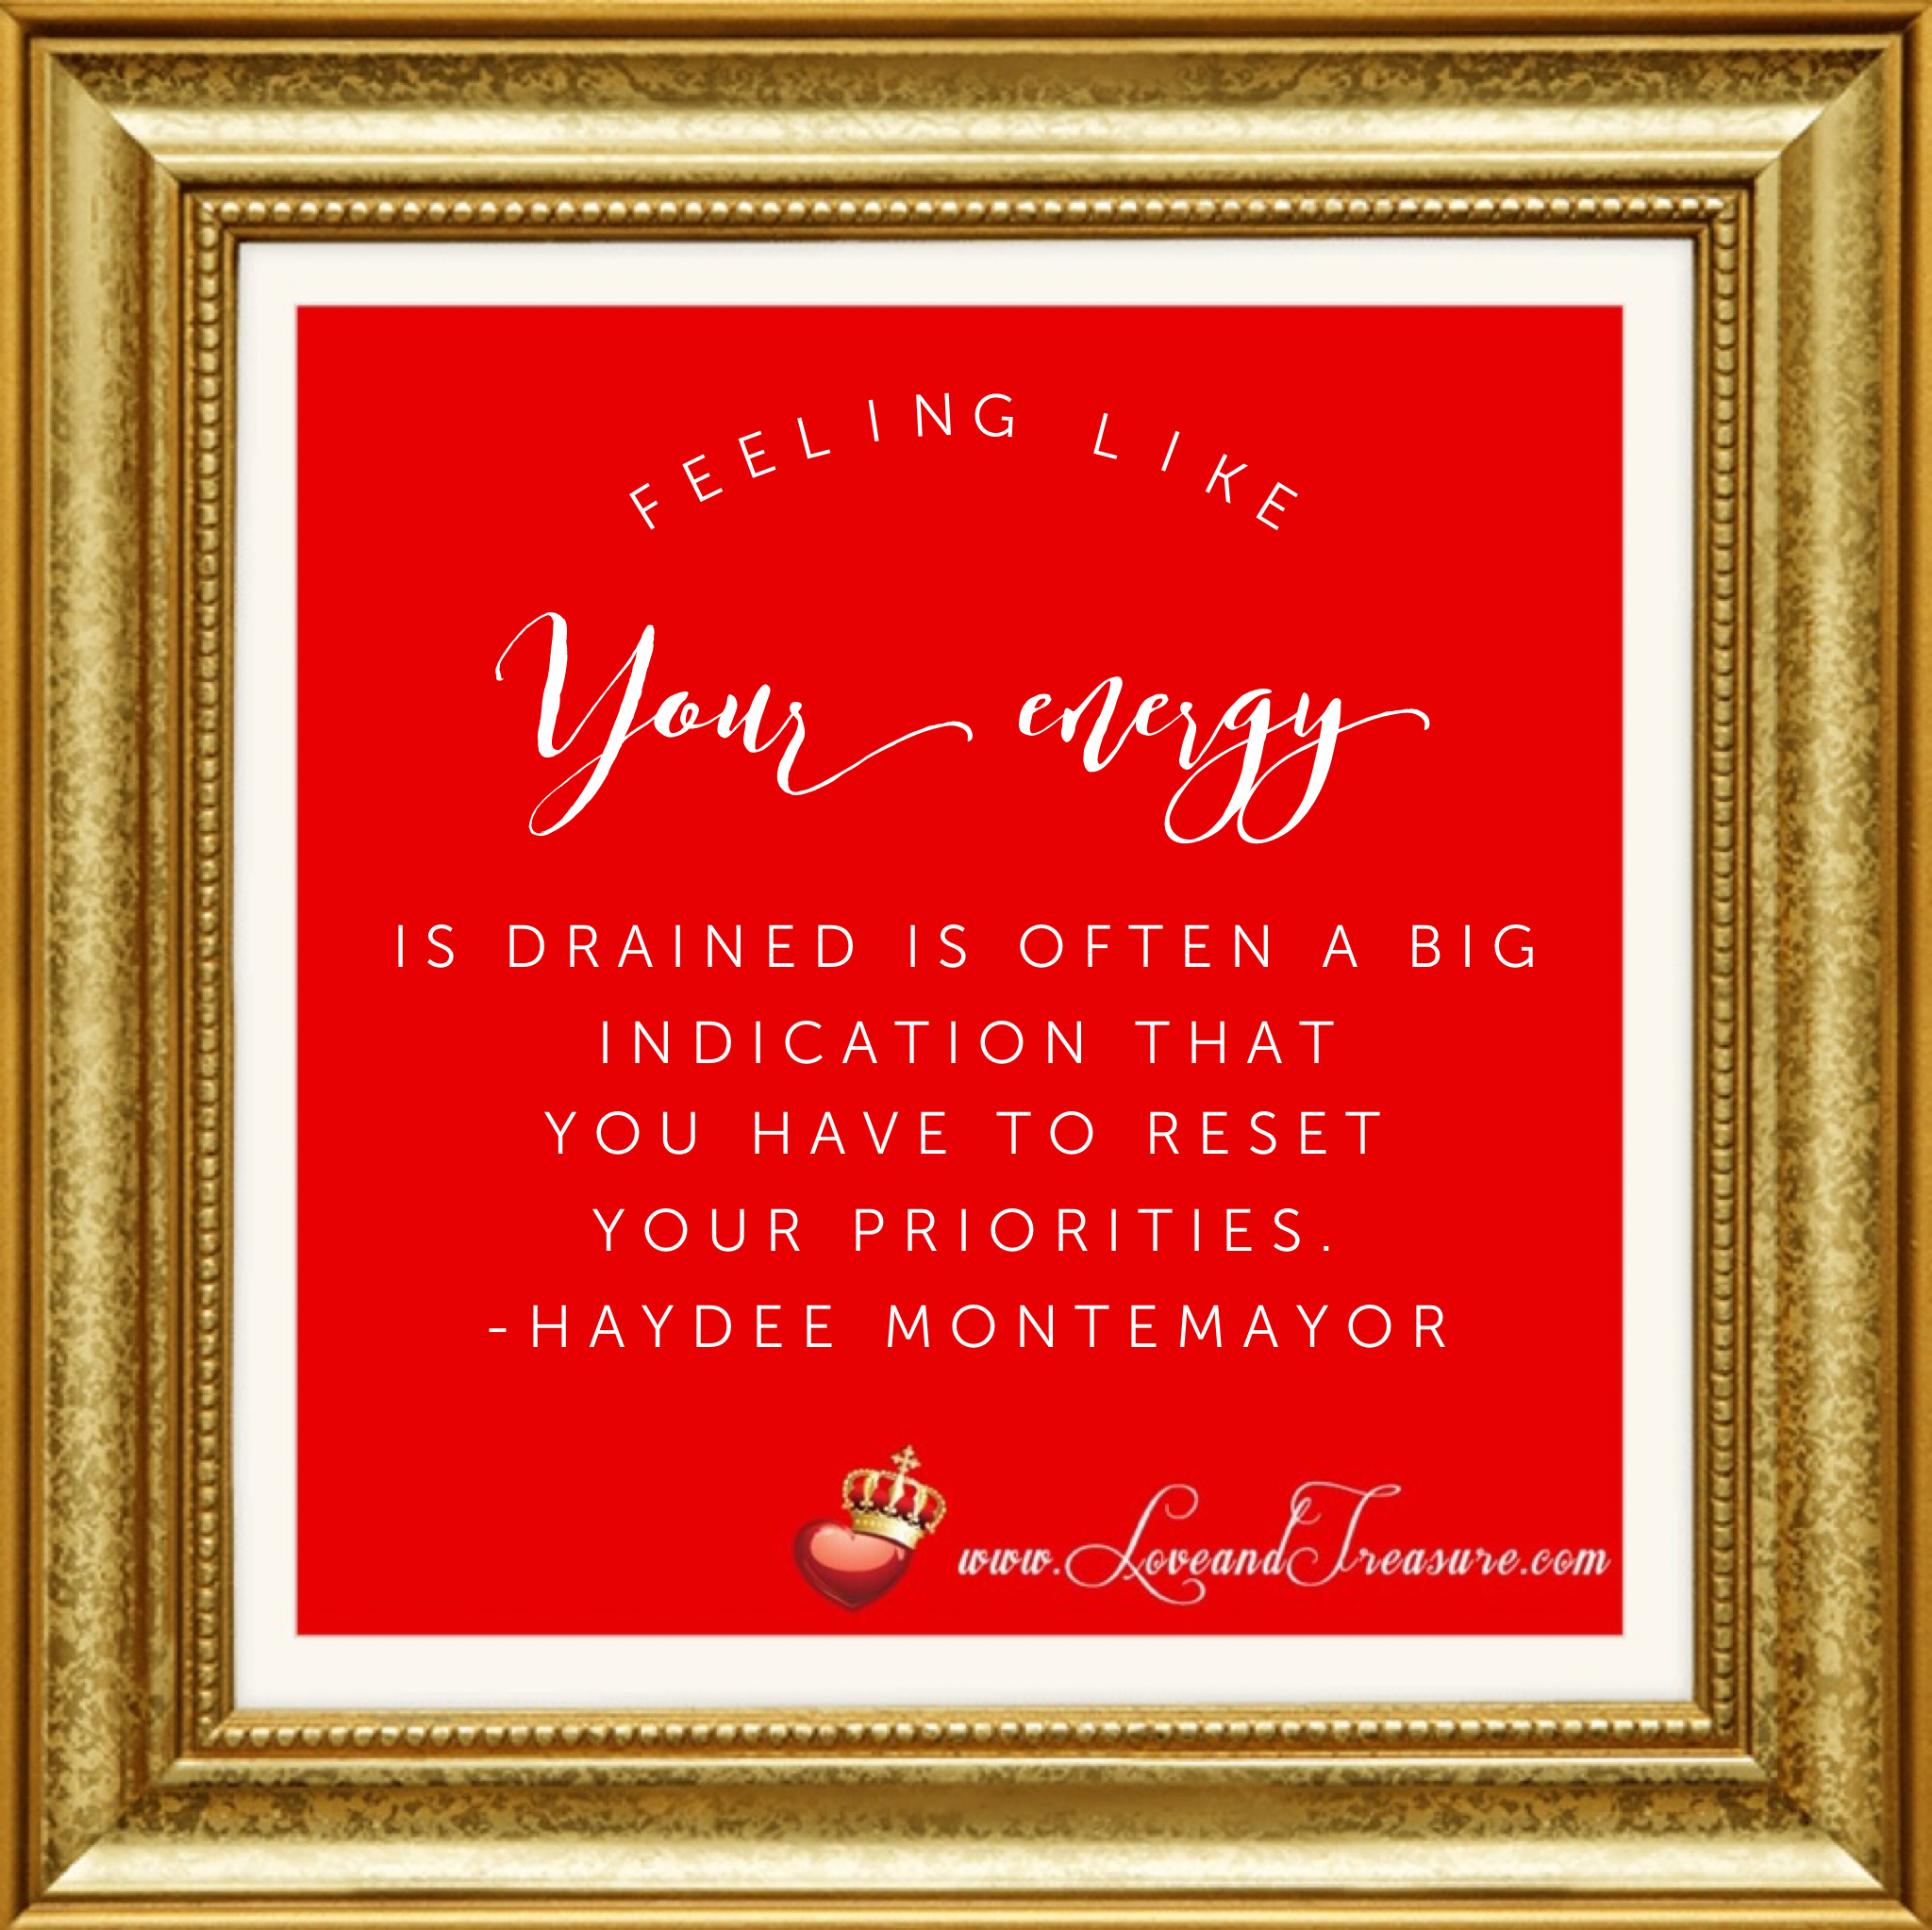 """Feeling like your energy is drained is often a big indication that you have to reset your priorities."" quotation by Haydee Montemayor from Love and Treasure www.loveandtreasure.com"